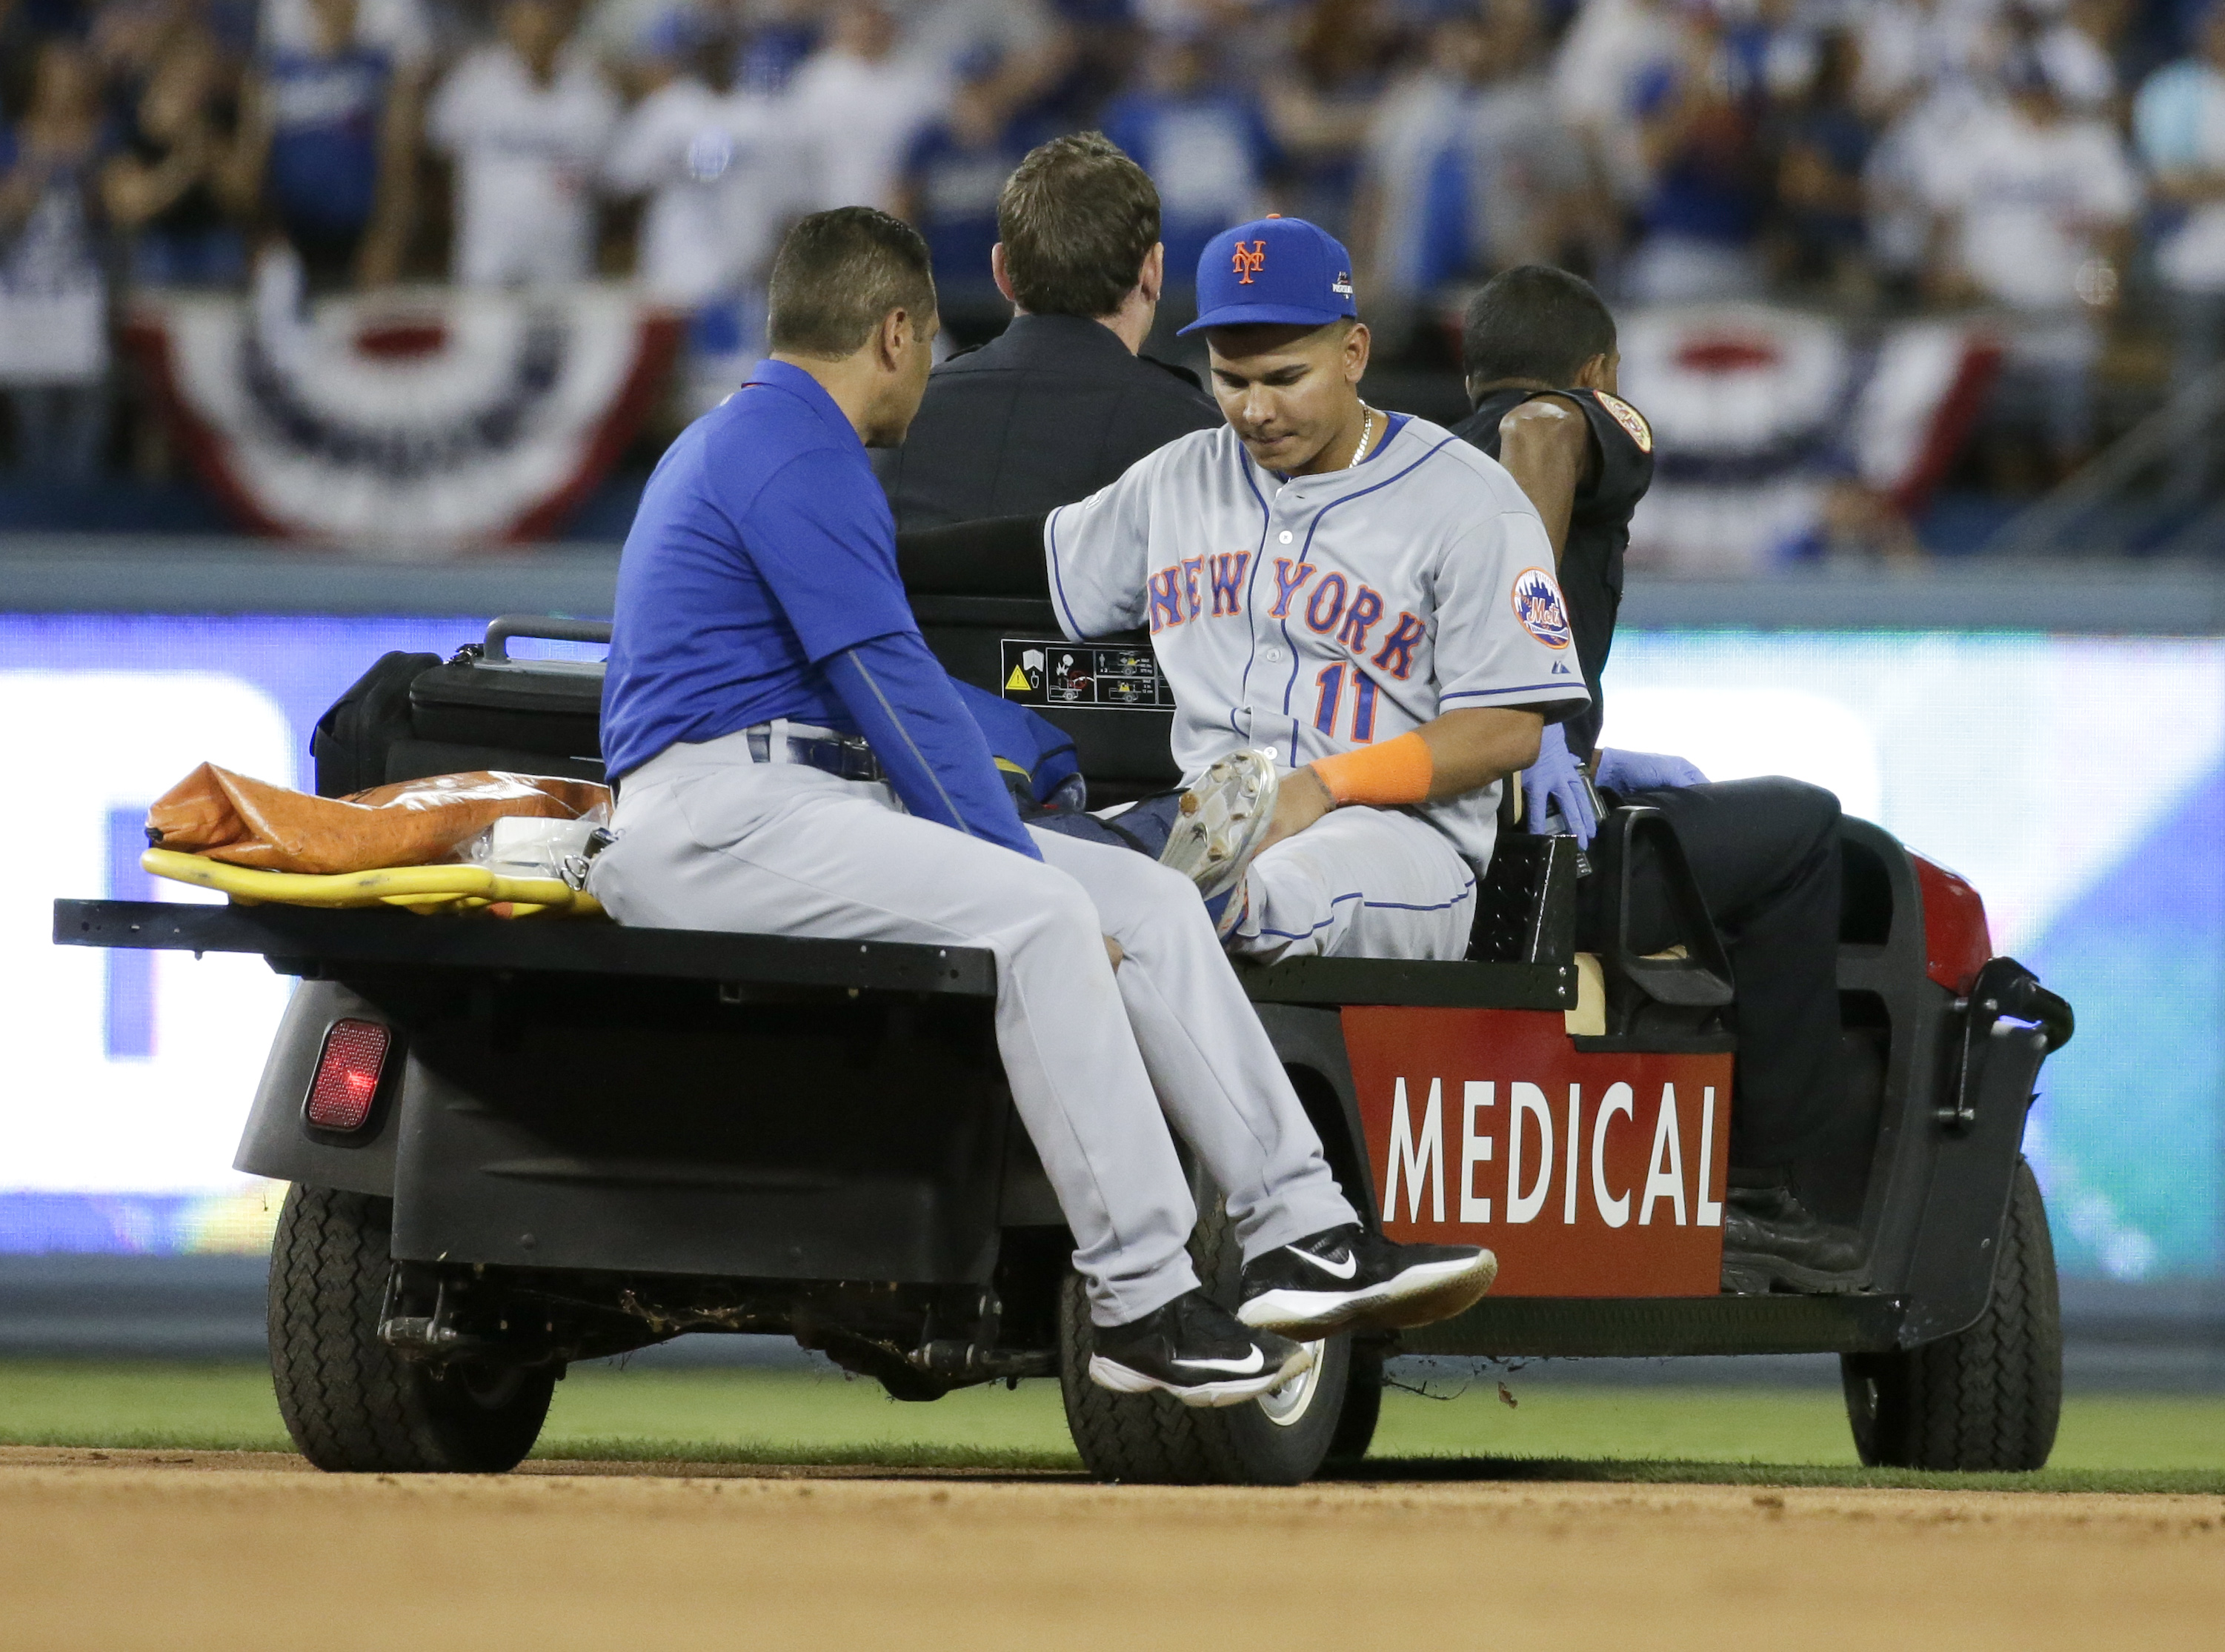 New York Mets shortstop Ruben Tejada is taken off the field after being hurt in a double play against the Los Angeles Dodgers during the seventh inning in Game 2 of baseball's National League Division Series, Saturday, Oct. 10, 2015 in Los Angeles. (AP Ph